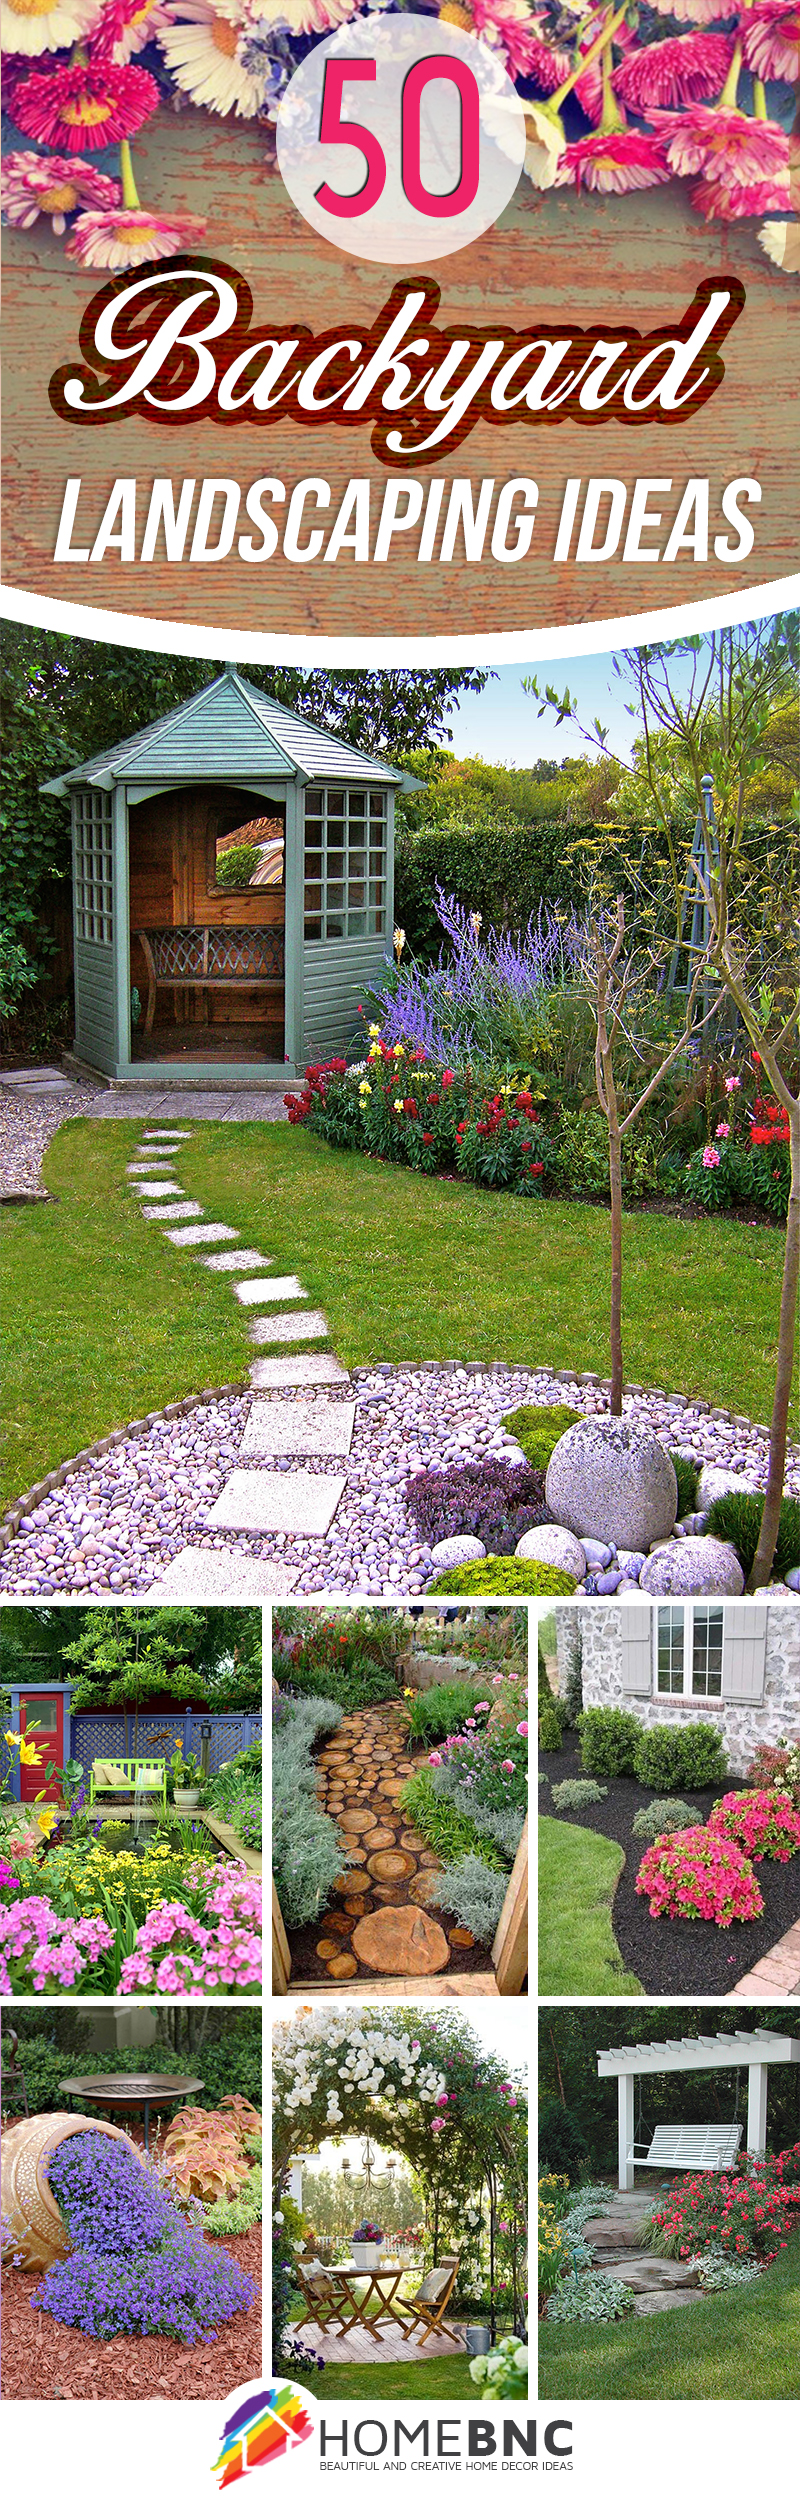 50 best backyard landscaping ideas and designs in 2017 for Family garden design ideas